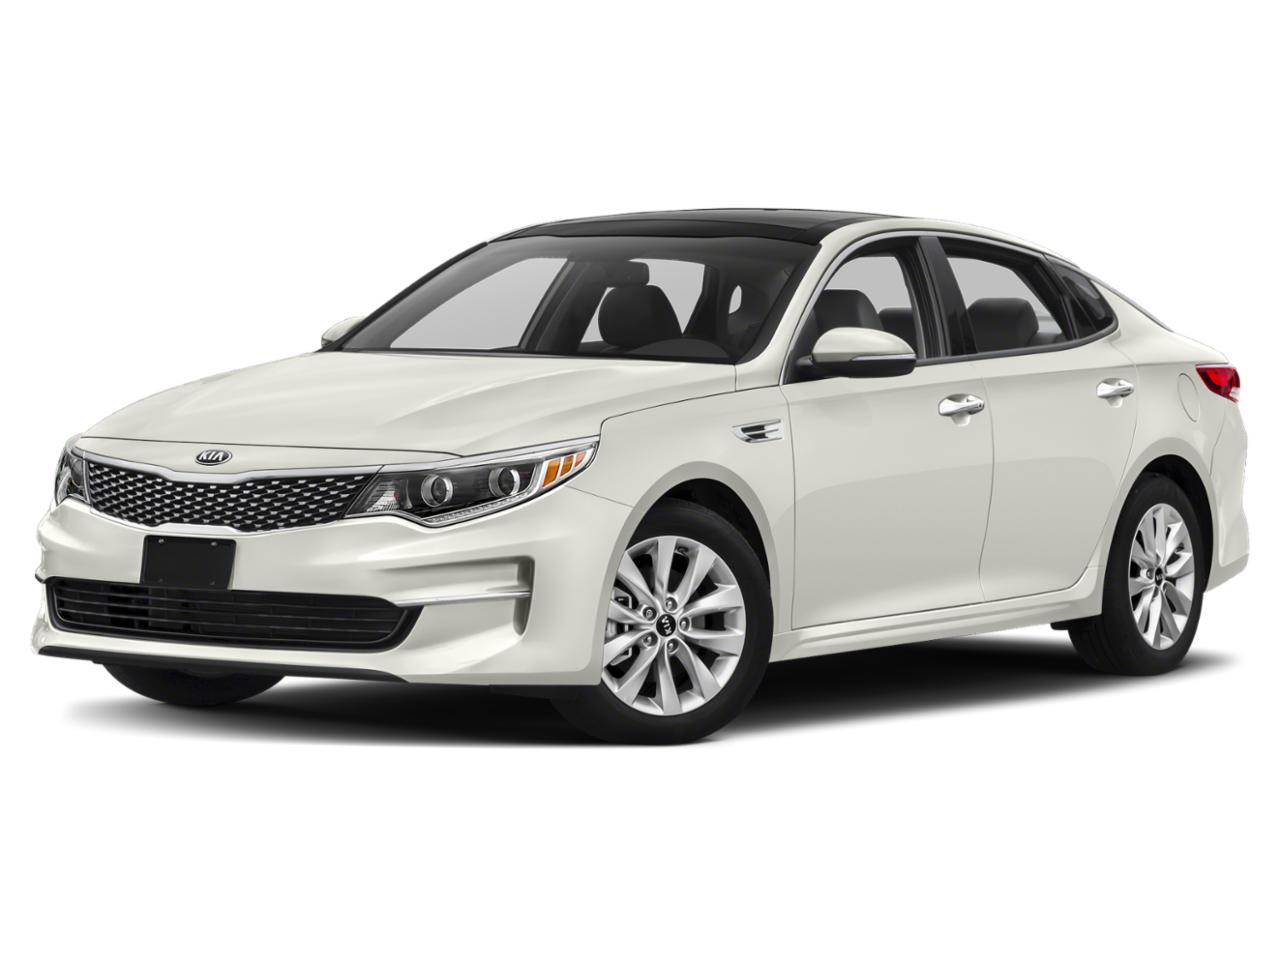 2018 Kia Optima Vehicle Photo in Raleigh, NC 27609